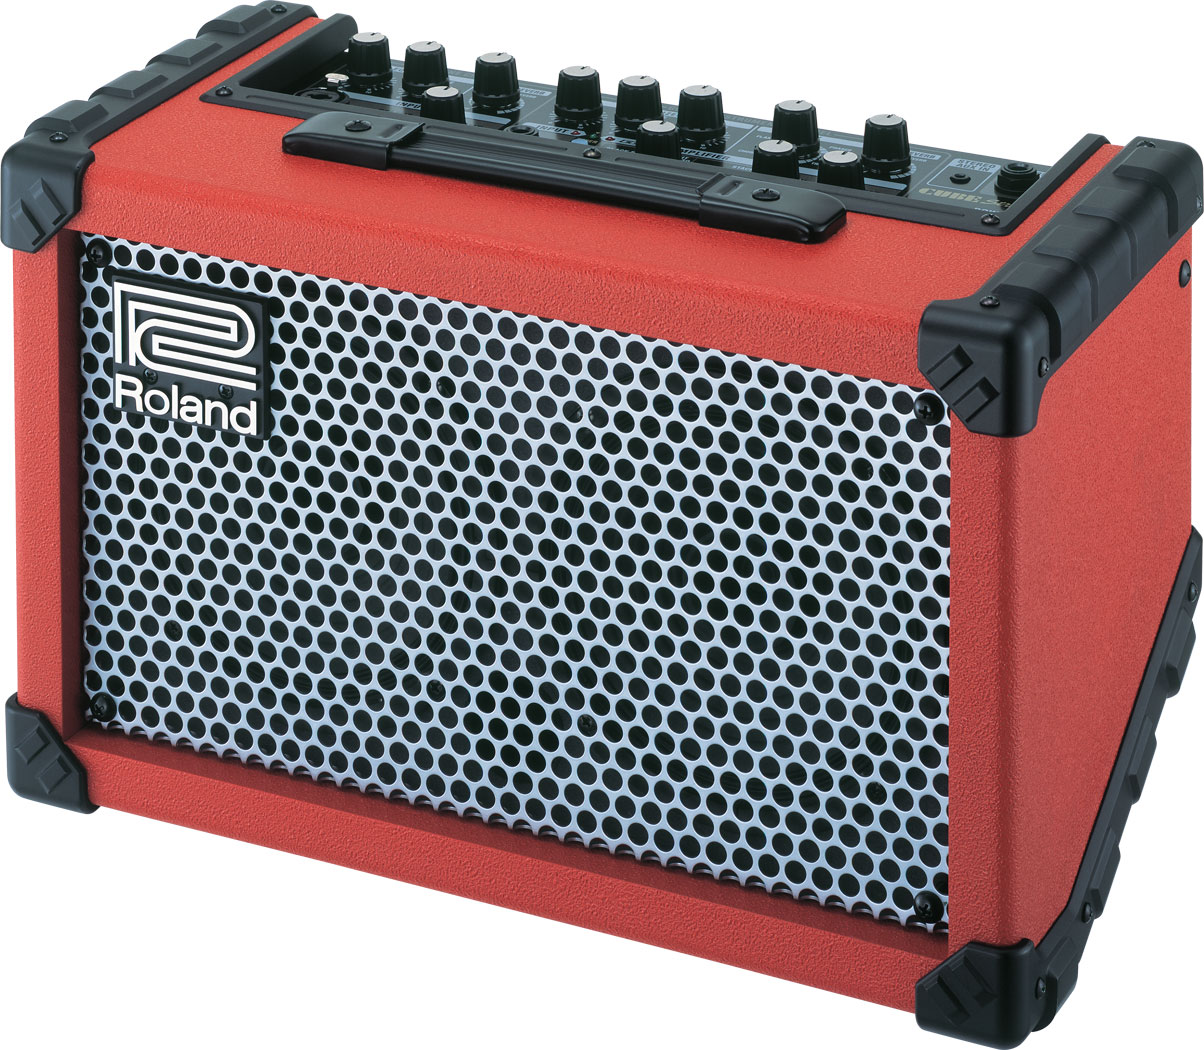 red roland cube street busker battery guitar amp amplifier with mic input warranty south. Black Bedroom Furniture Sets. Home Design Ideas